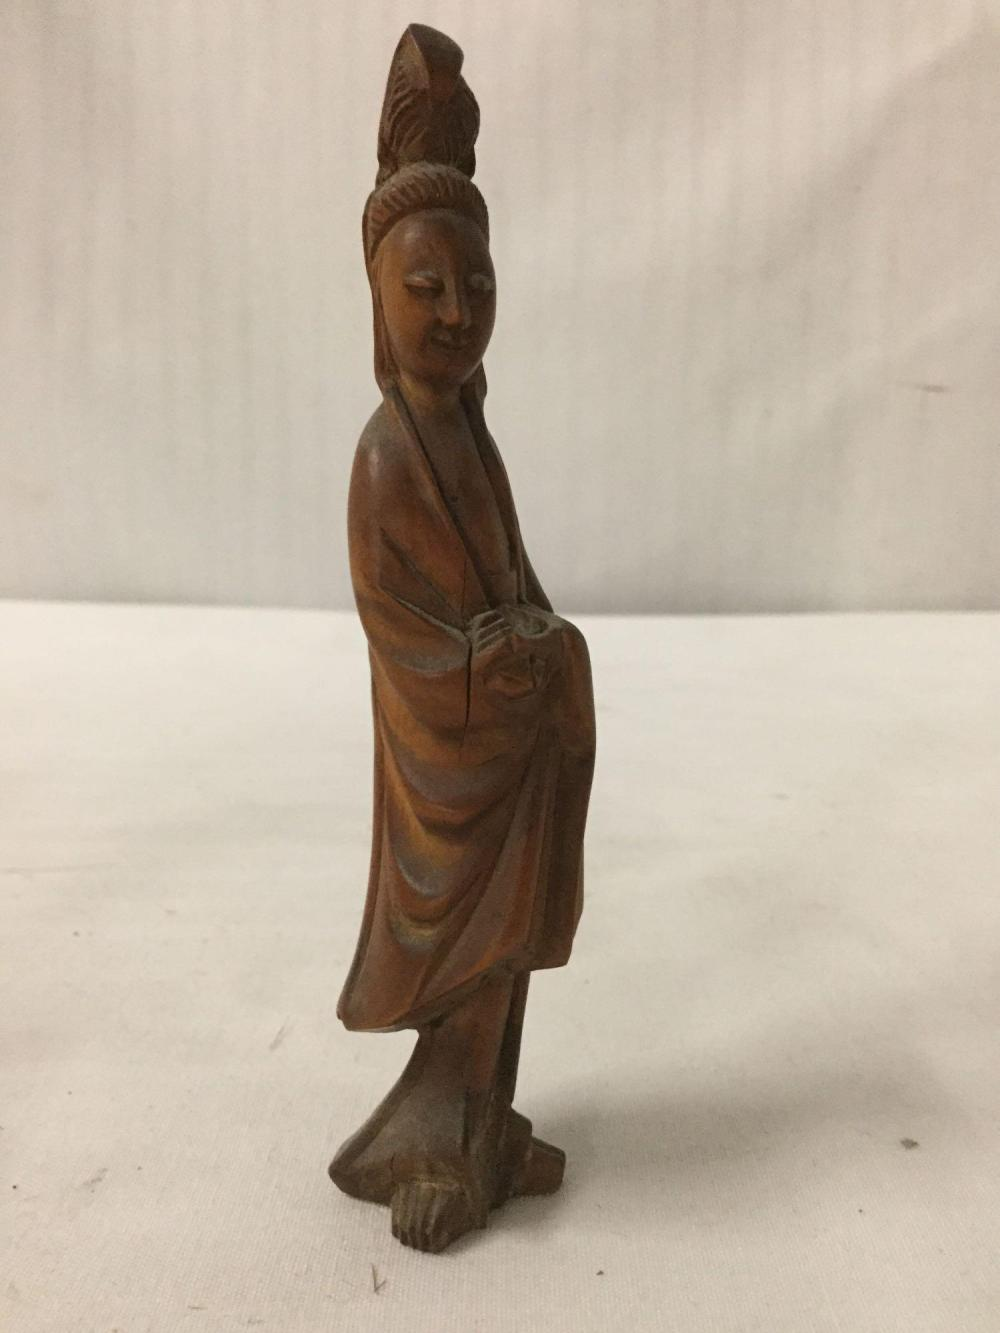 Lot 359: Lot of 5 small Asian figural carvings in wood and bone